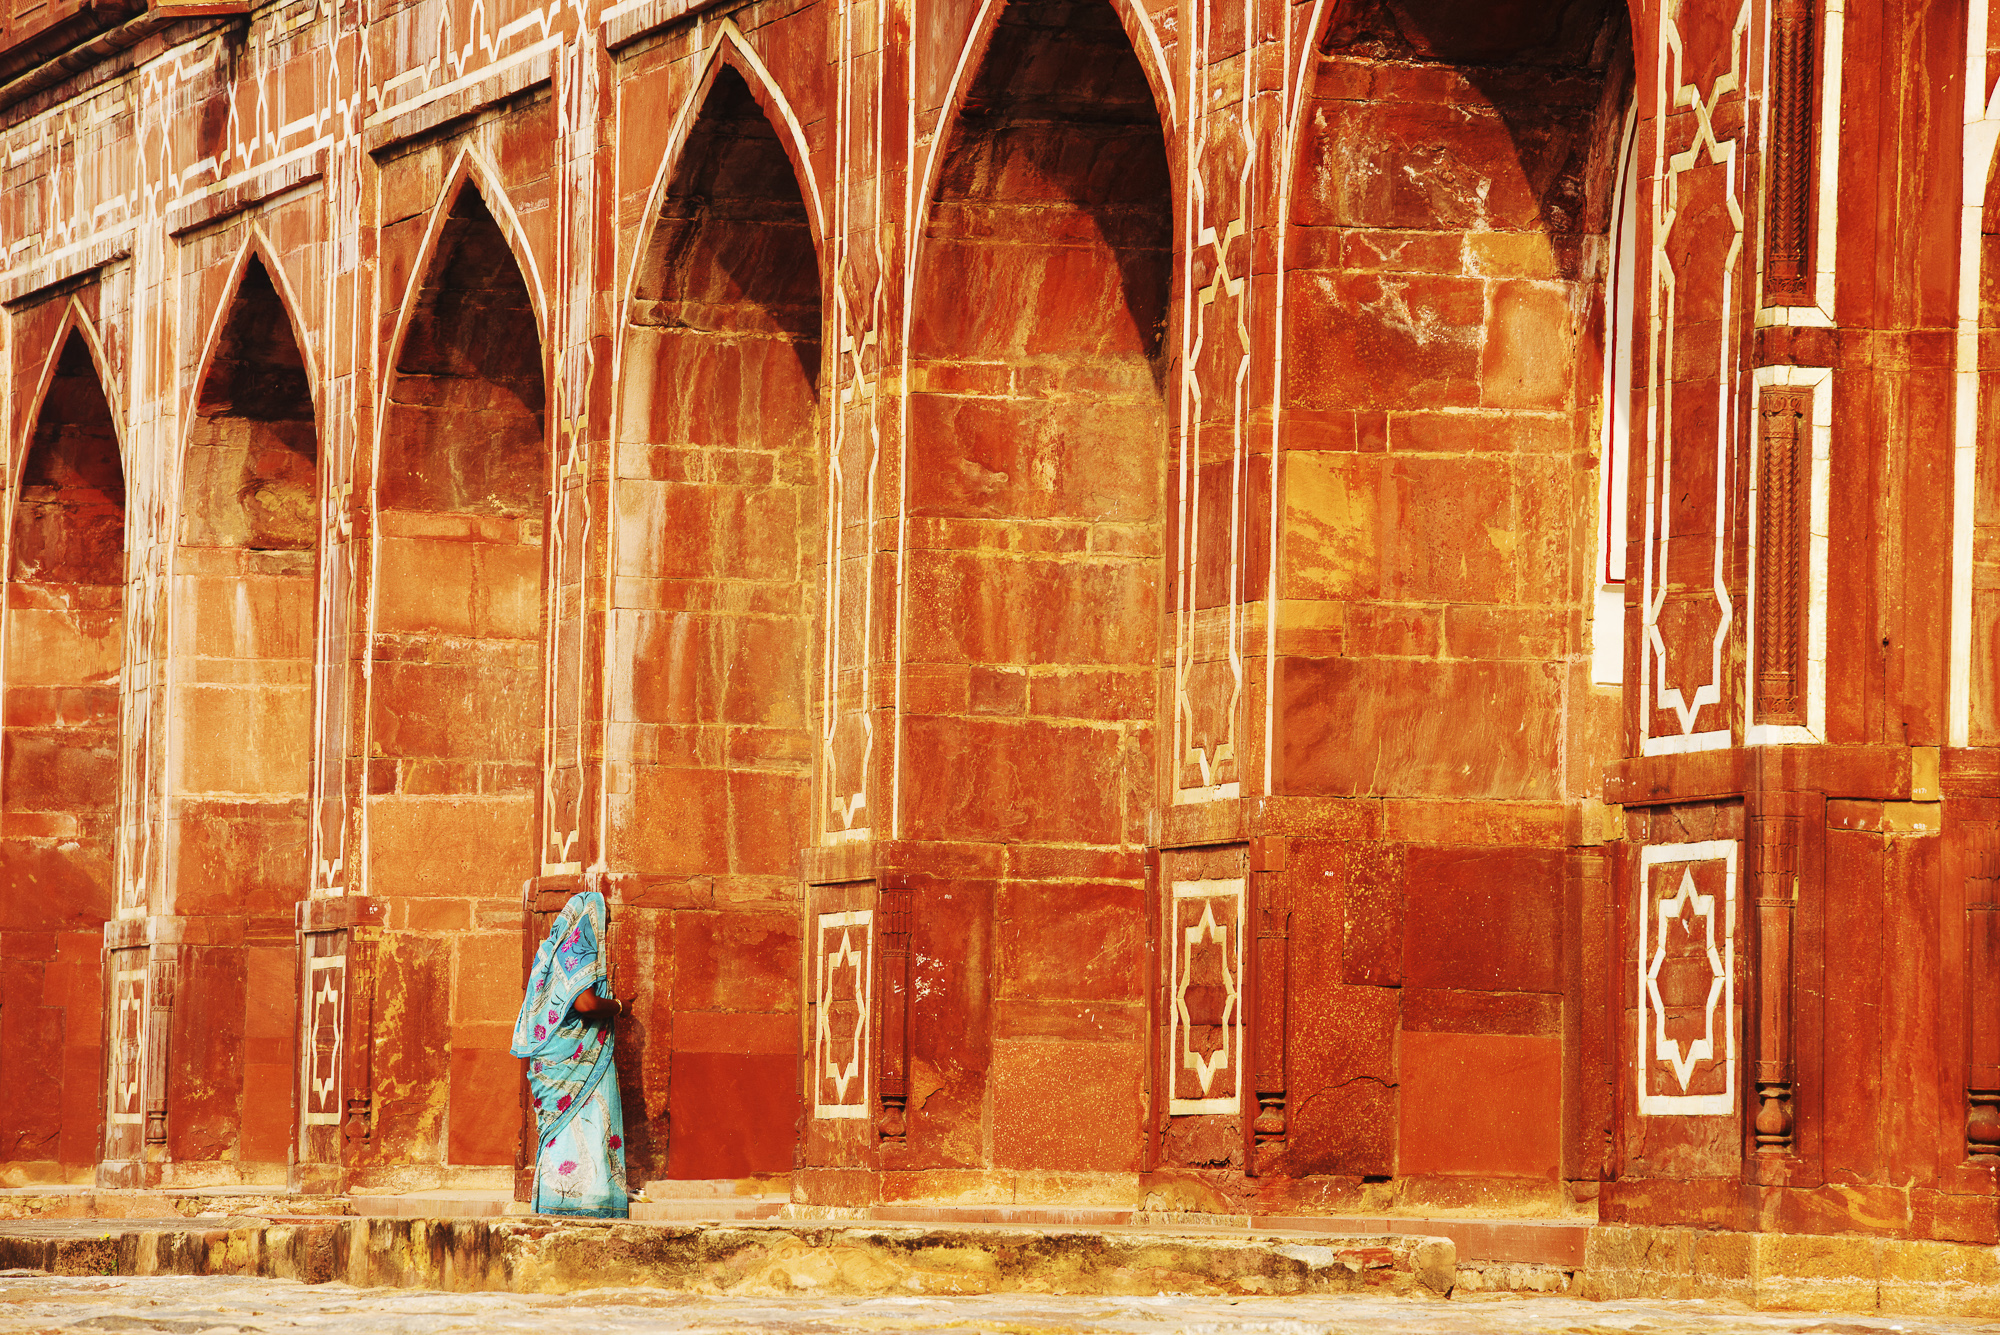 Woman & Arches of Humayun's Tomb, New Delhi, India